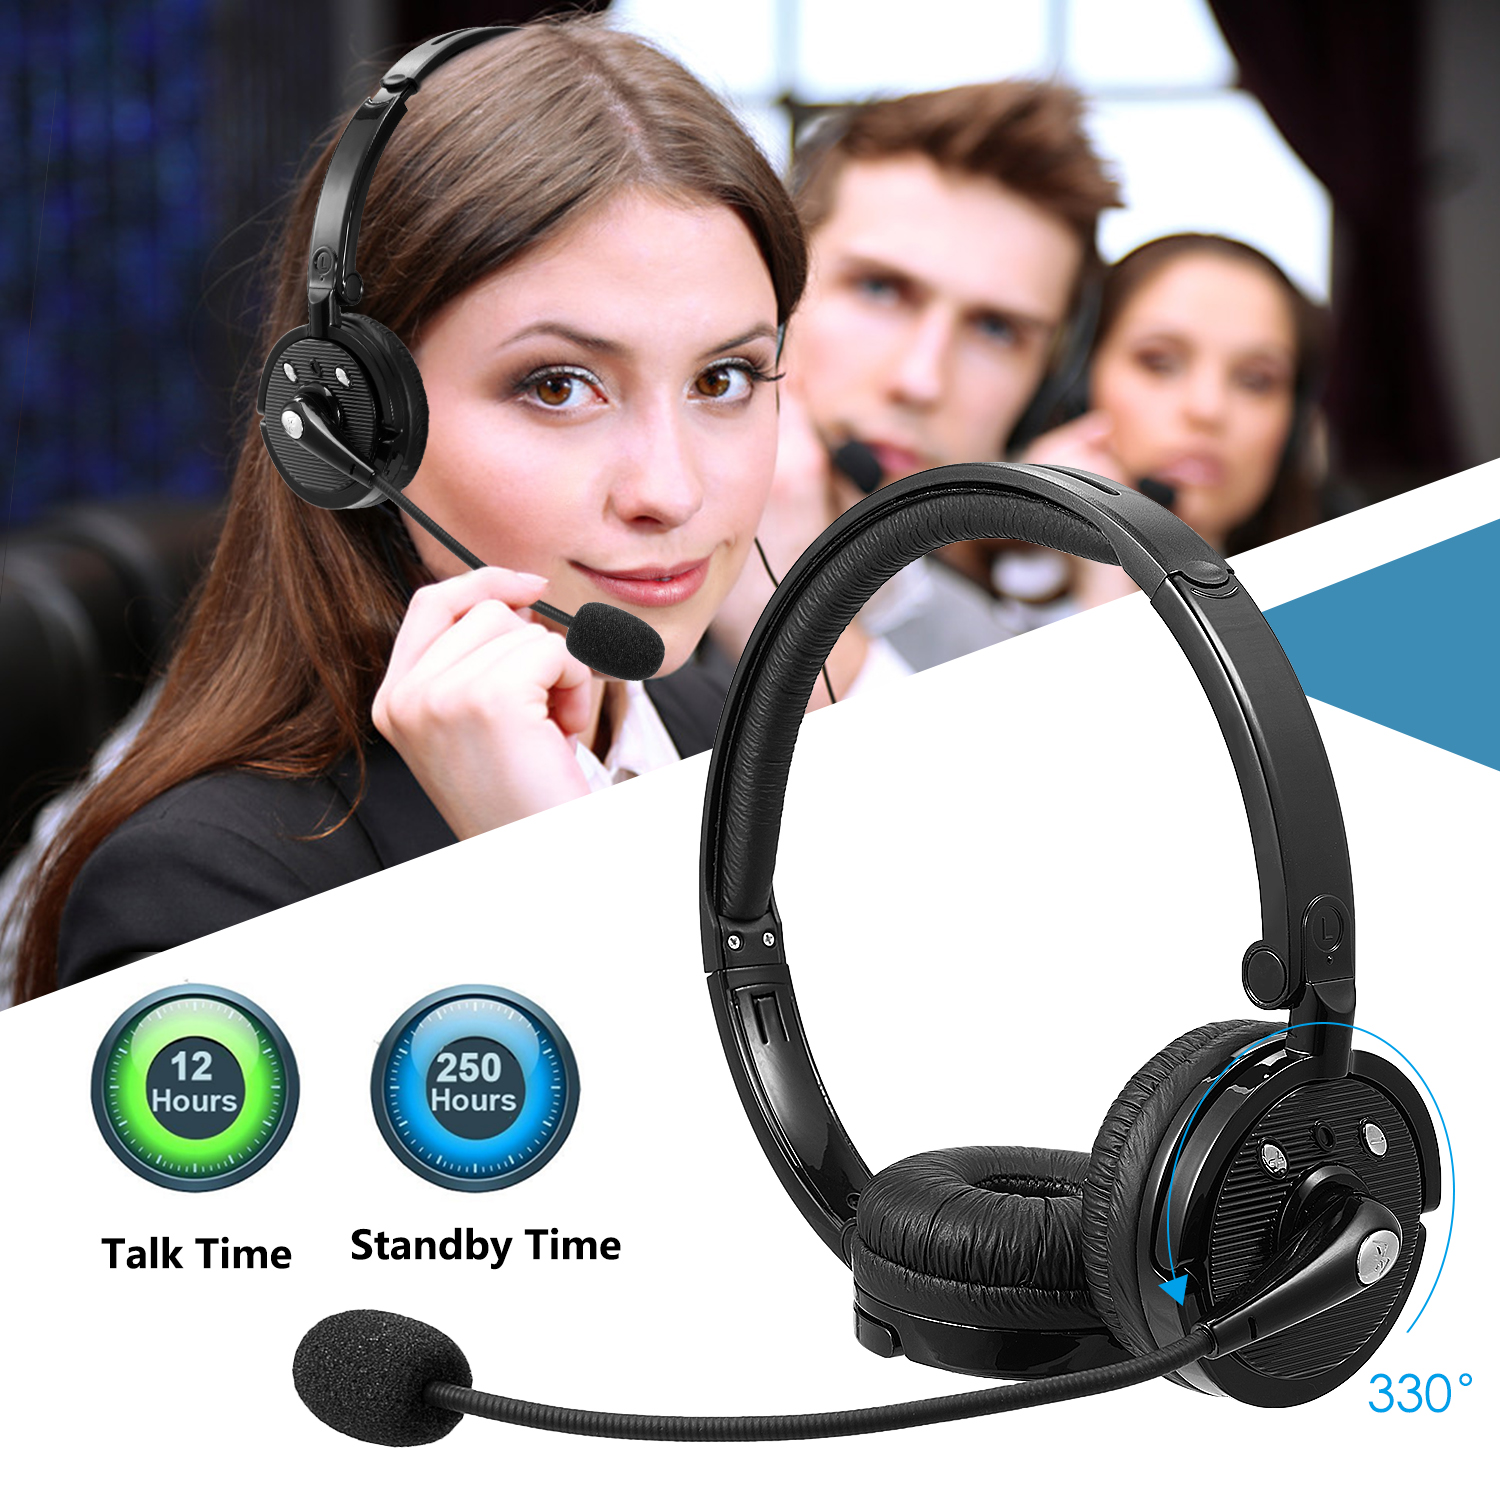 Luxmo Over Ear Wireless Bluetooth Headset With Mic Noise Cancelling Crystal Clear Foldable Headphones With Boom Microphone And Volume Control For Trucker Driver Office Call Center Iphone Android Walmart Com Walmart Com